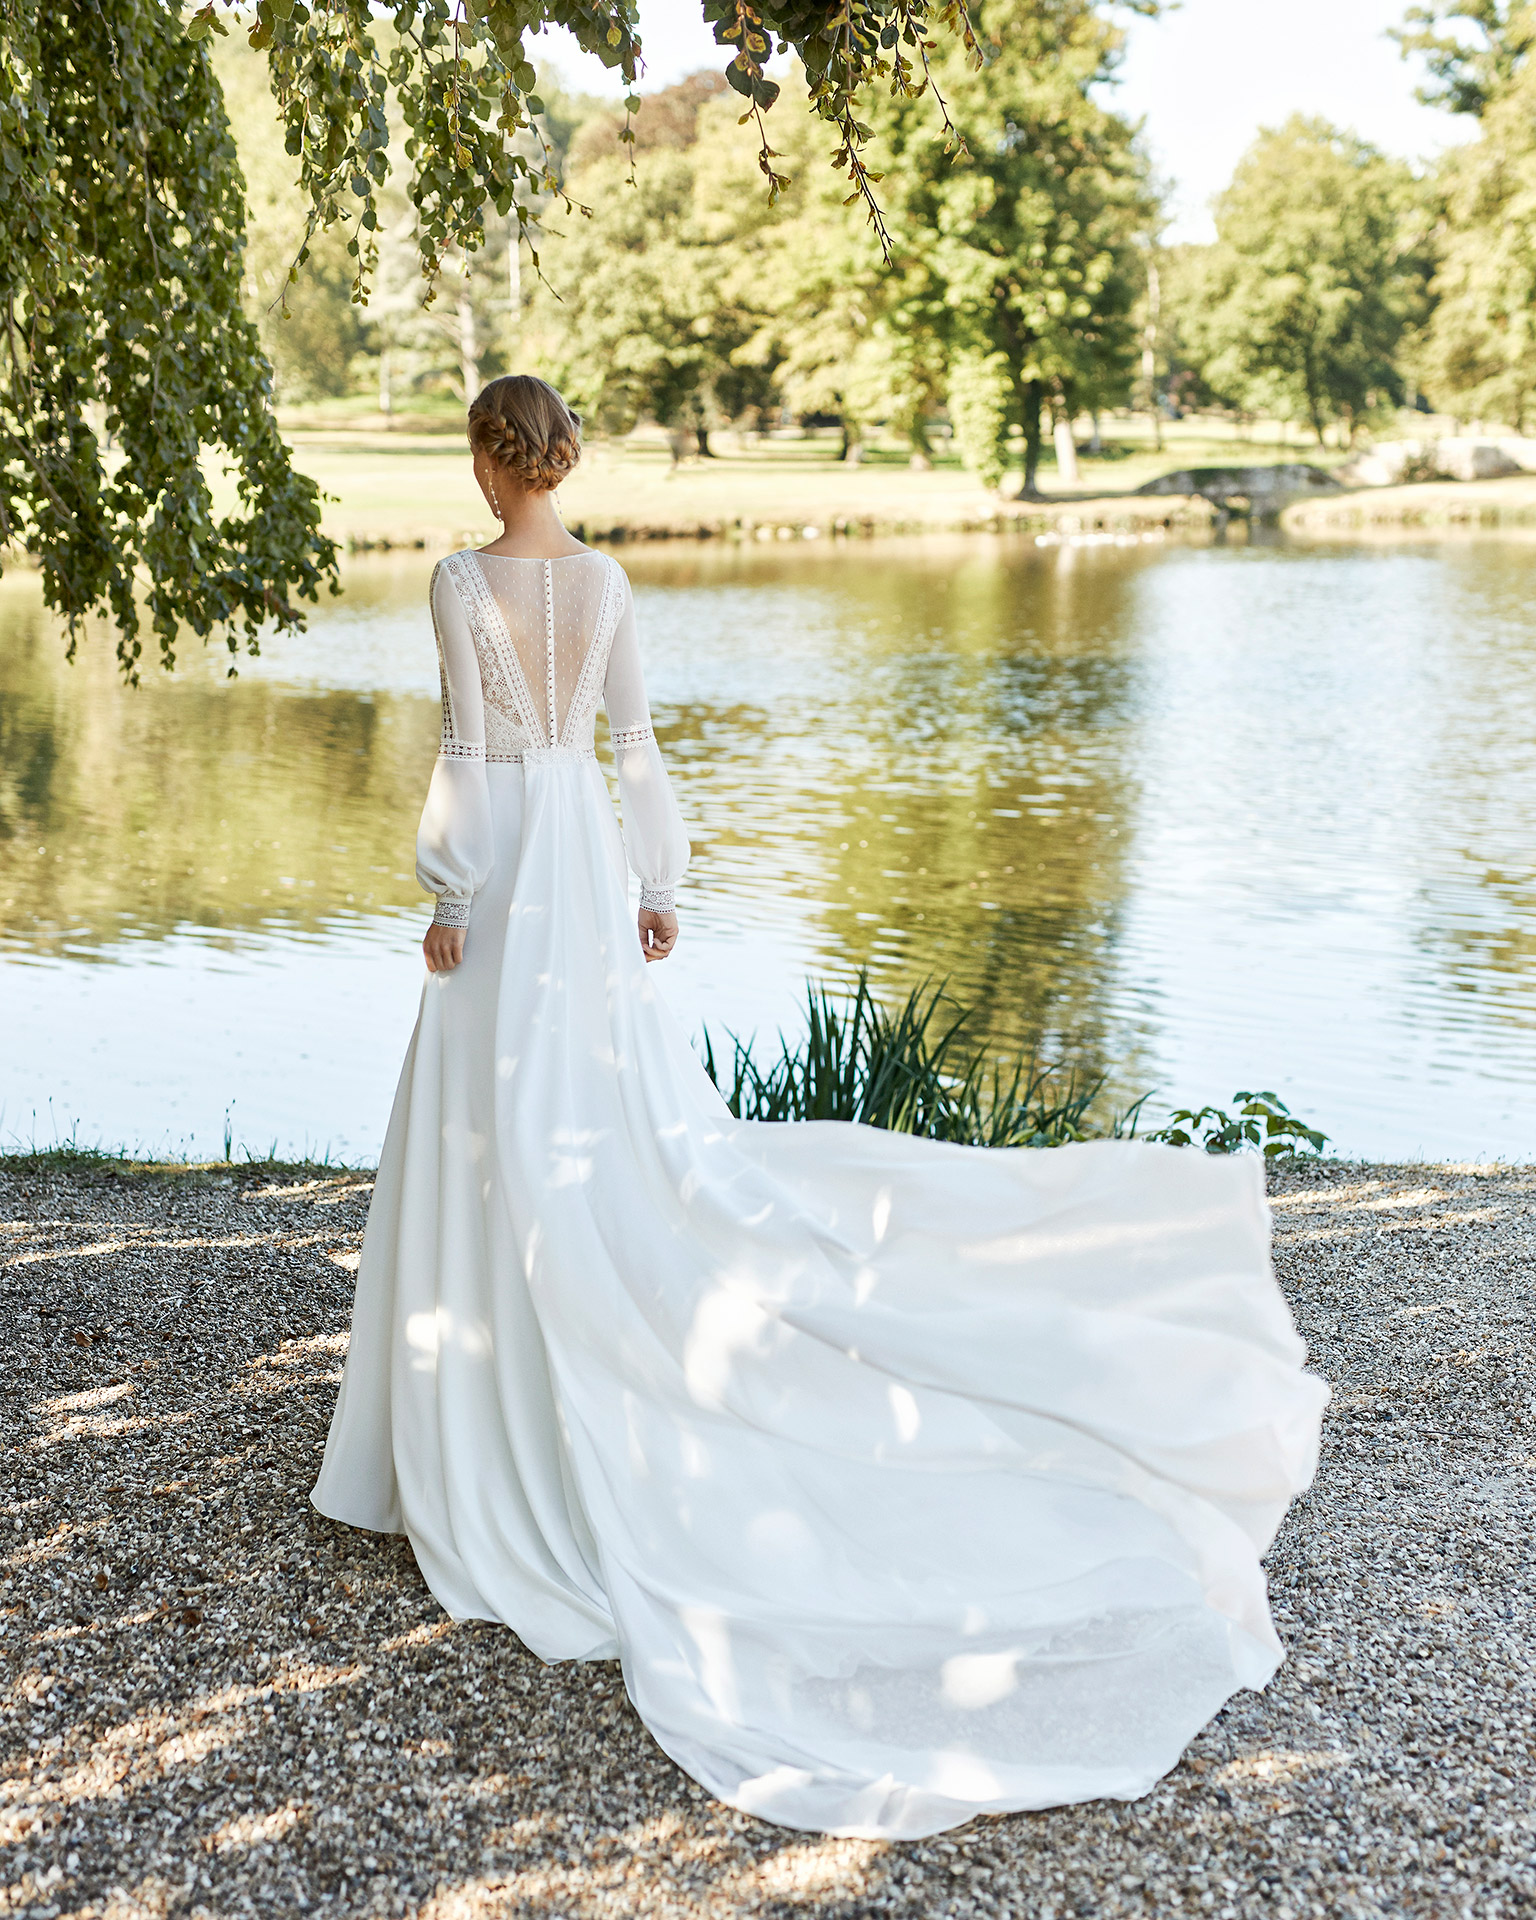 Wedding dress and train in crepe Georgette. V-neckline in lace, long puffed sleeves in crepe Georgette and back in dot tulle with buttons. 2021 ALMANOVIA Collection.